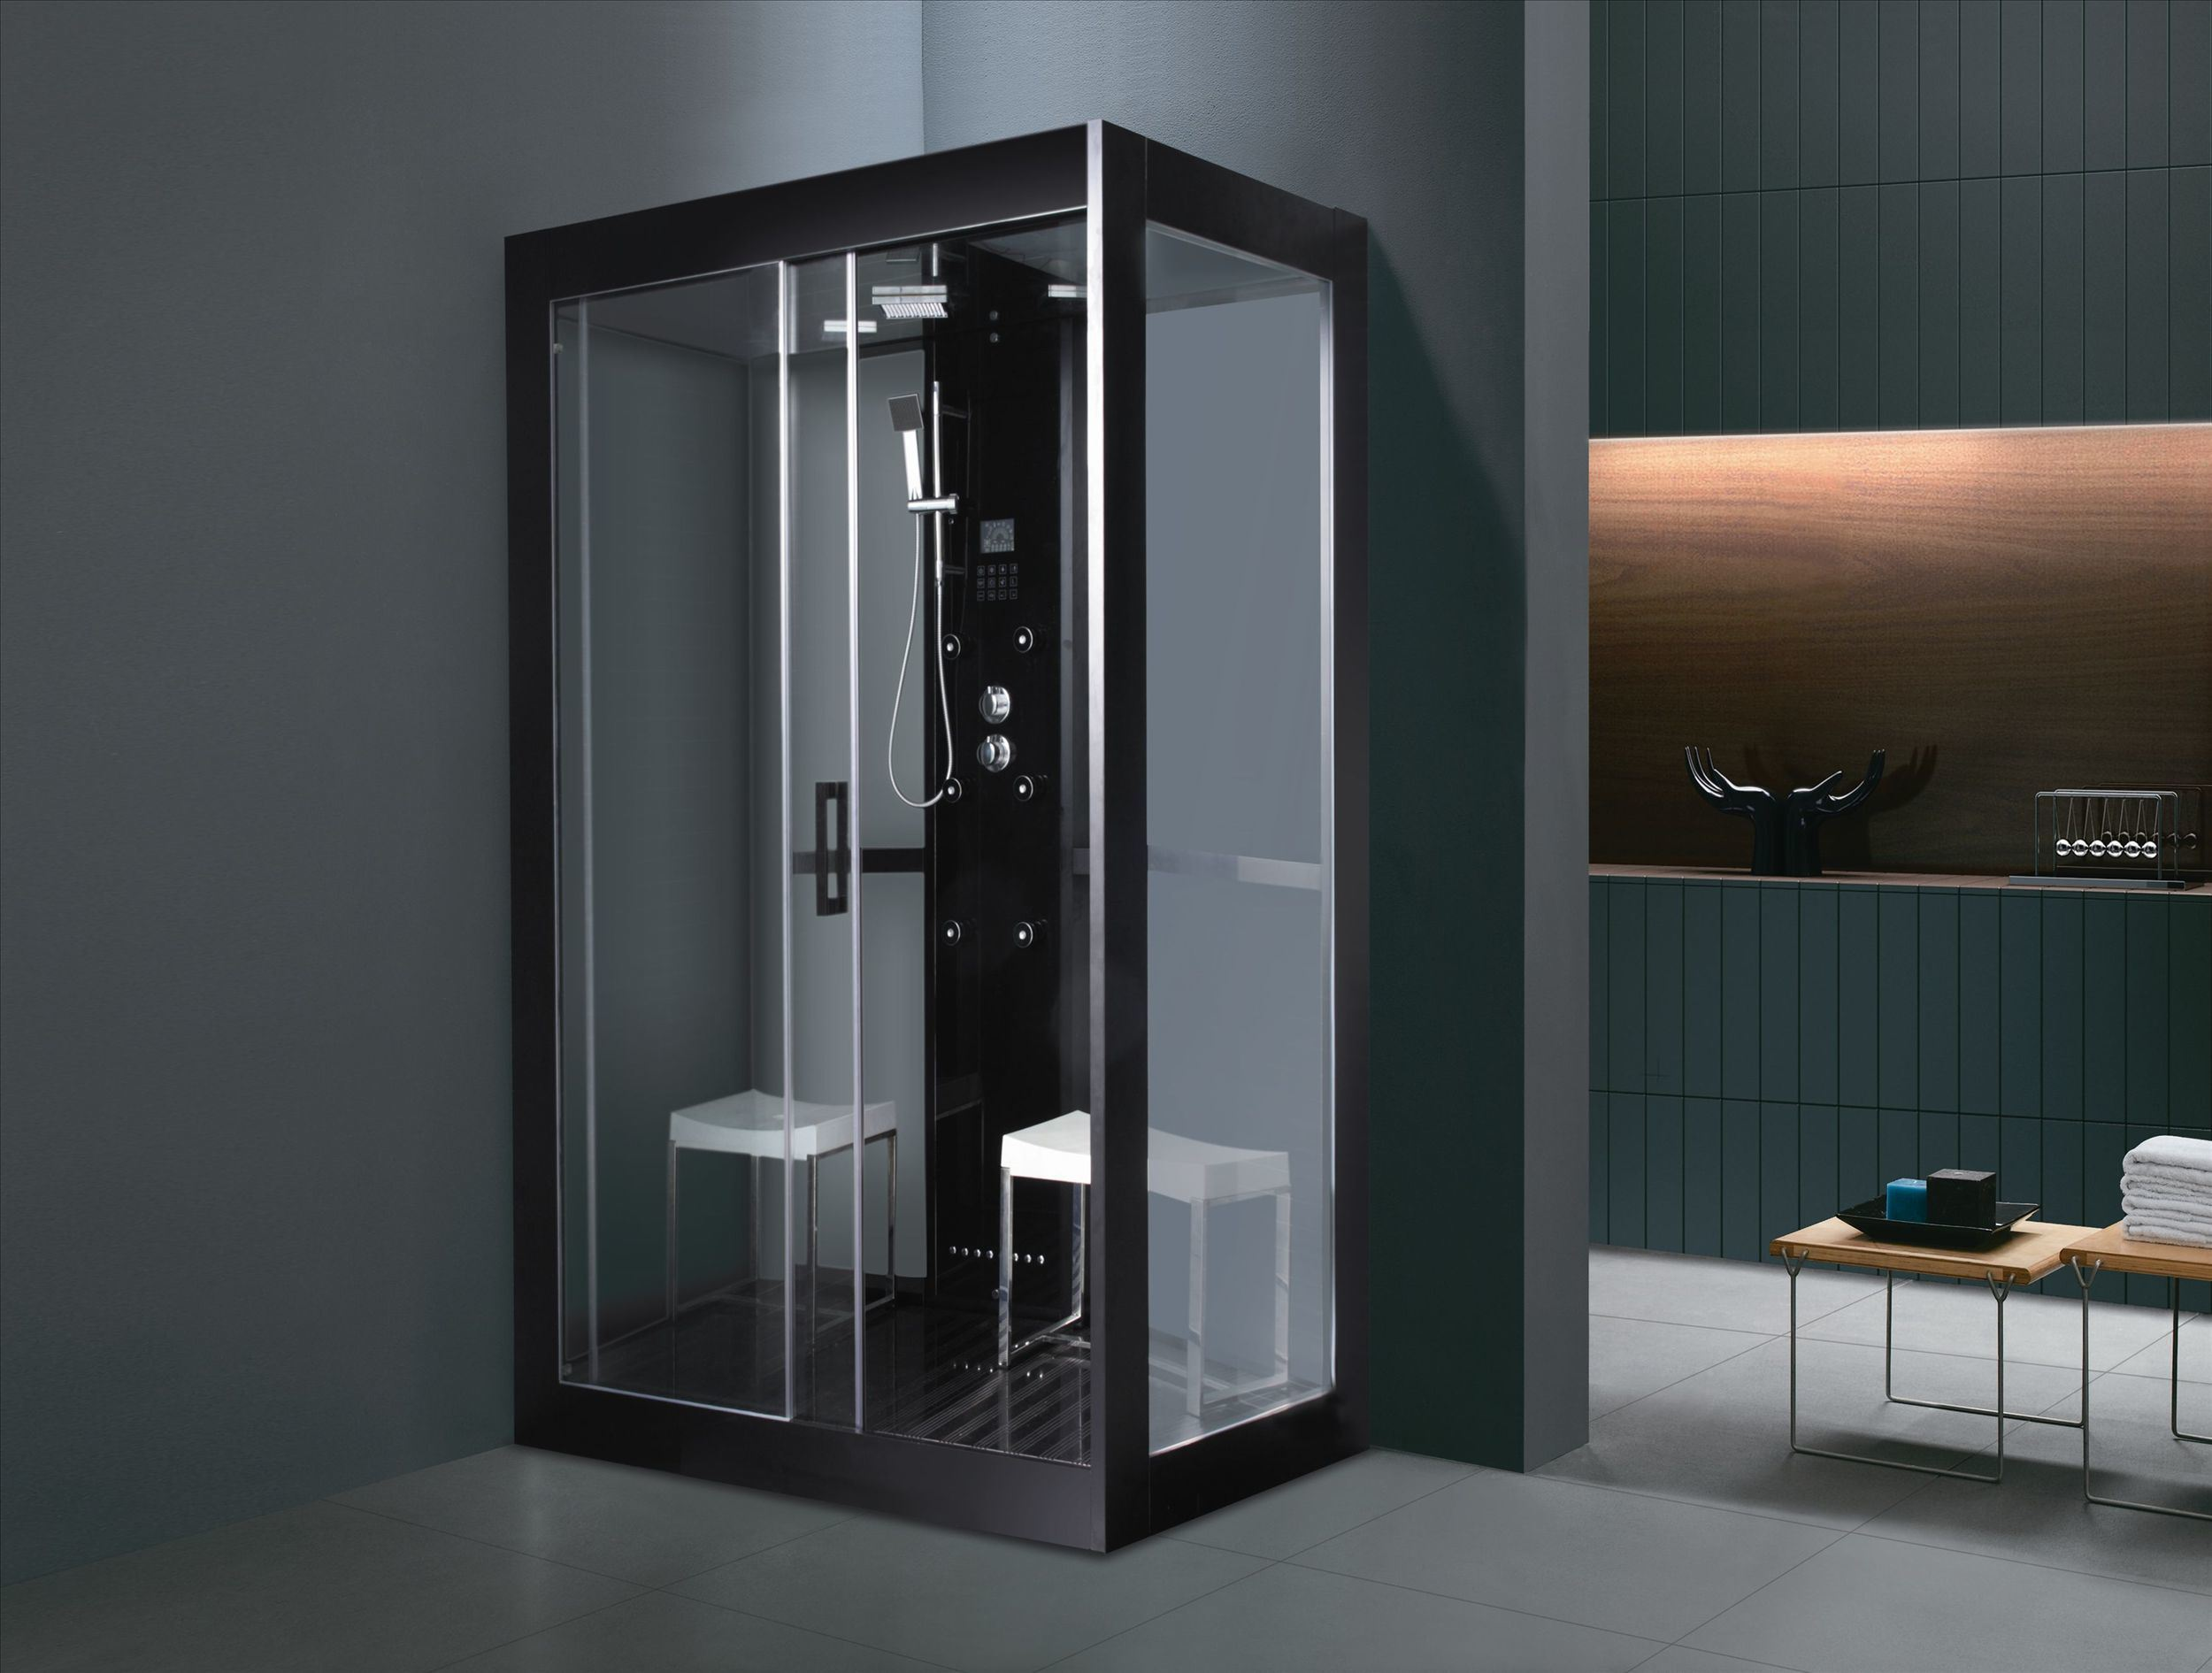 Luxury High Quality Computer Controlled Steam Sauna Shower Cabinet Room (M-8285)